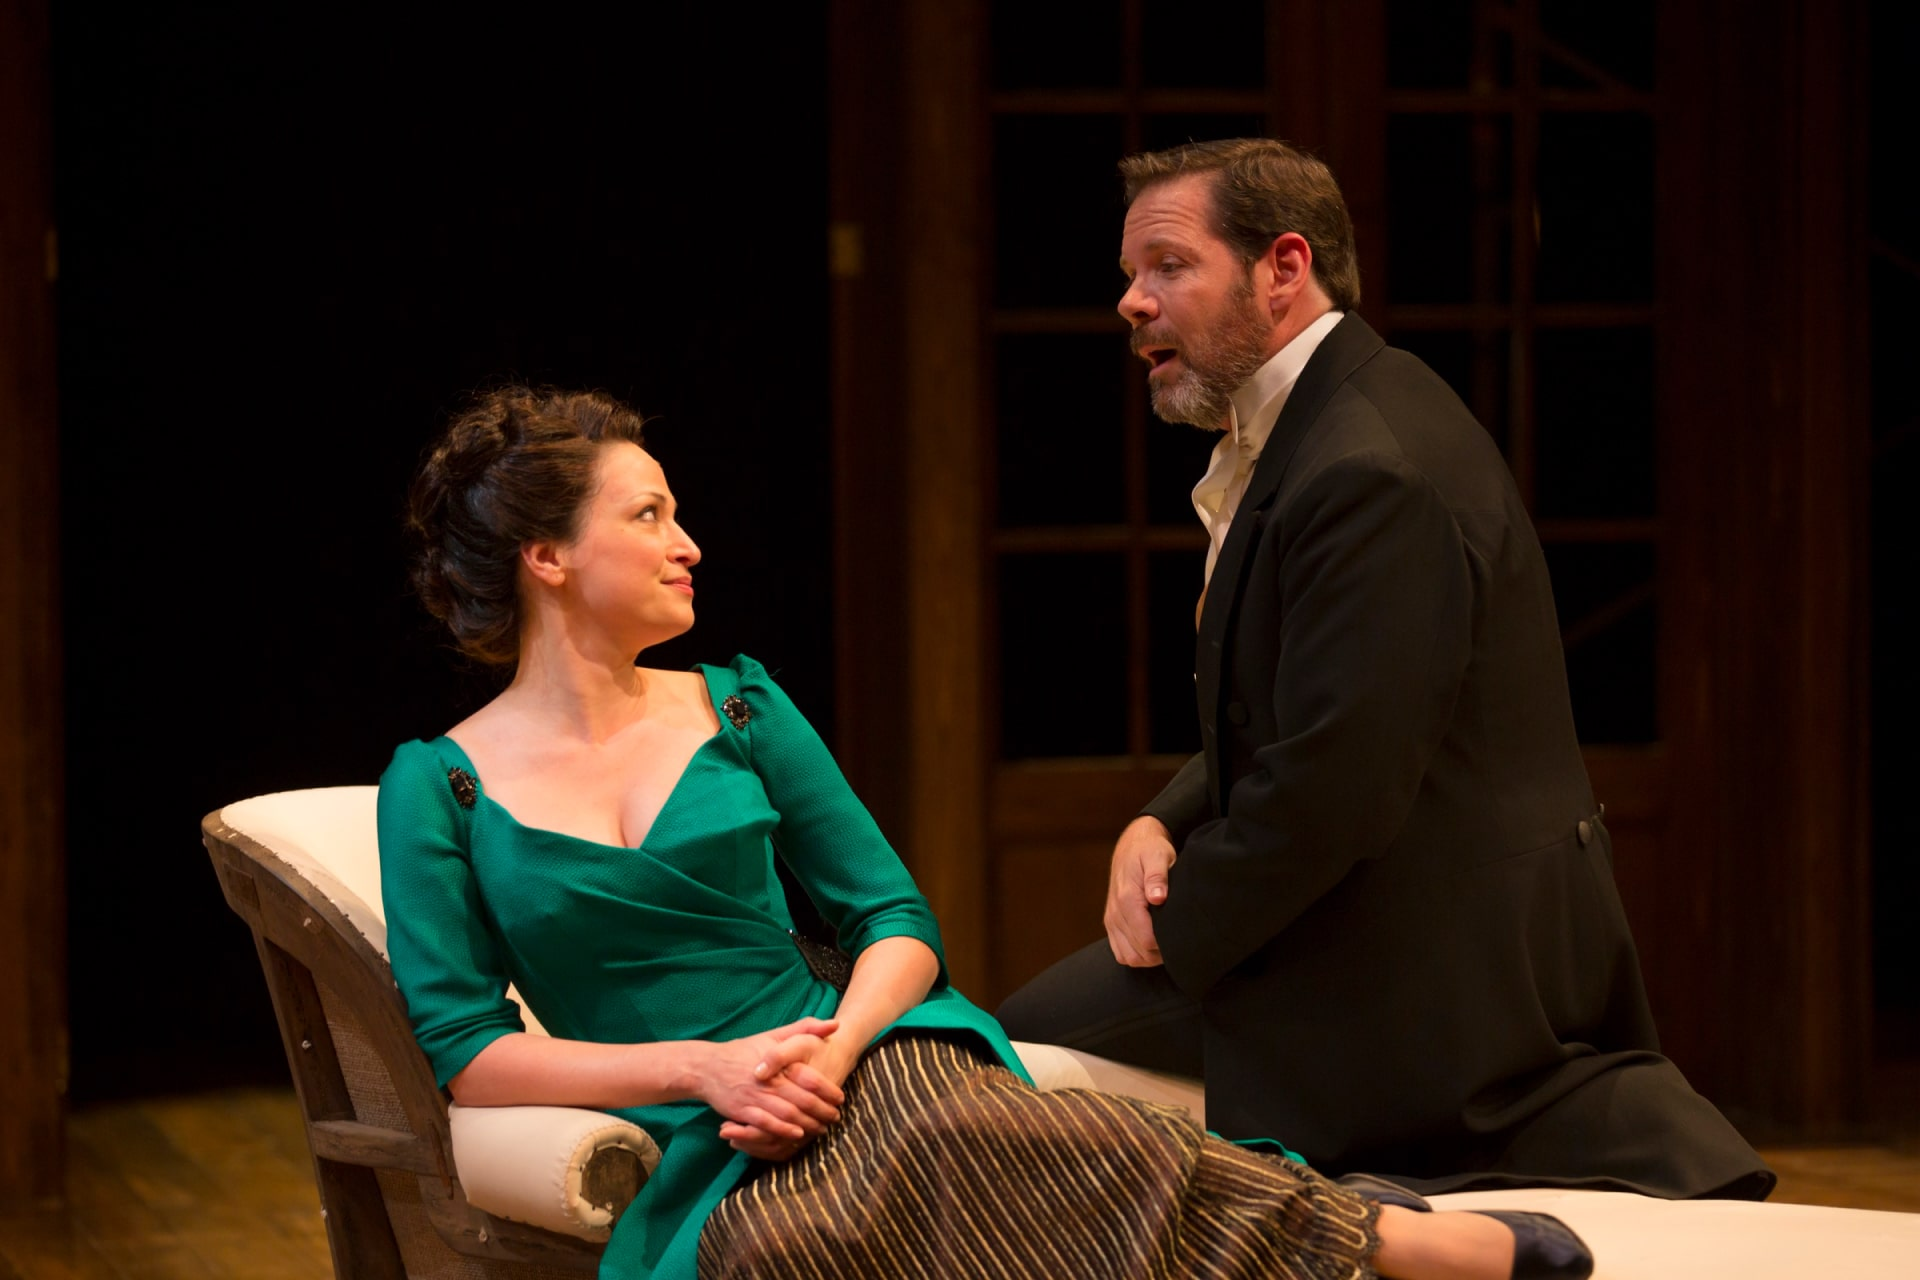 Woman in green dress sits on chaise talking with suited man perched beside.